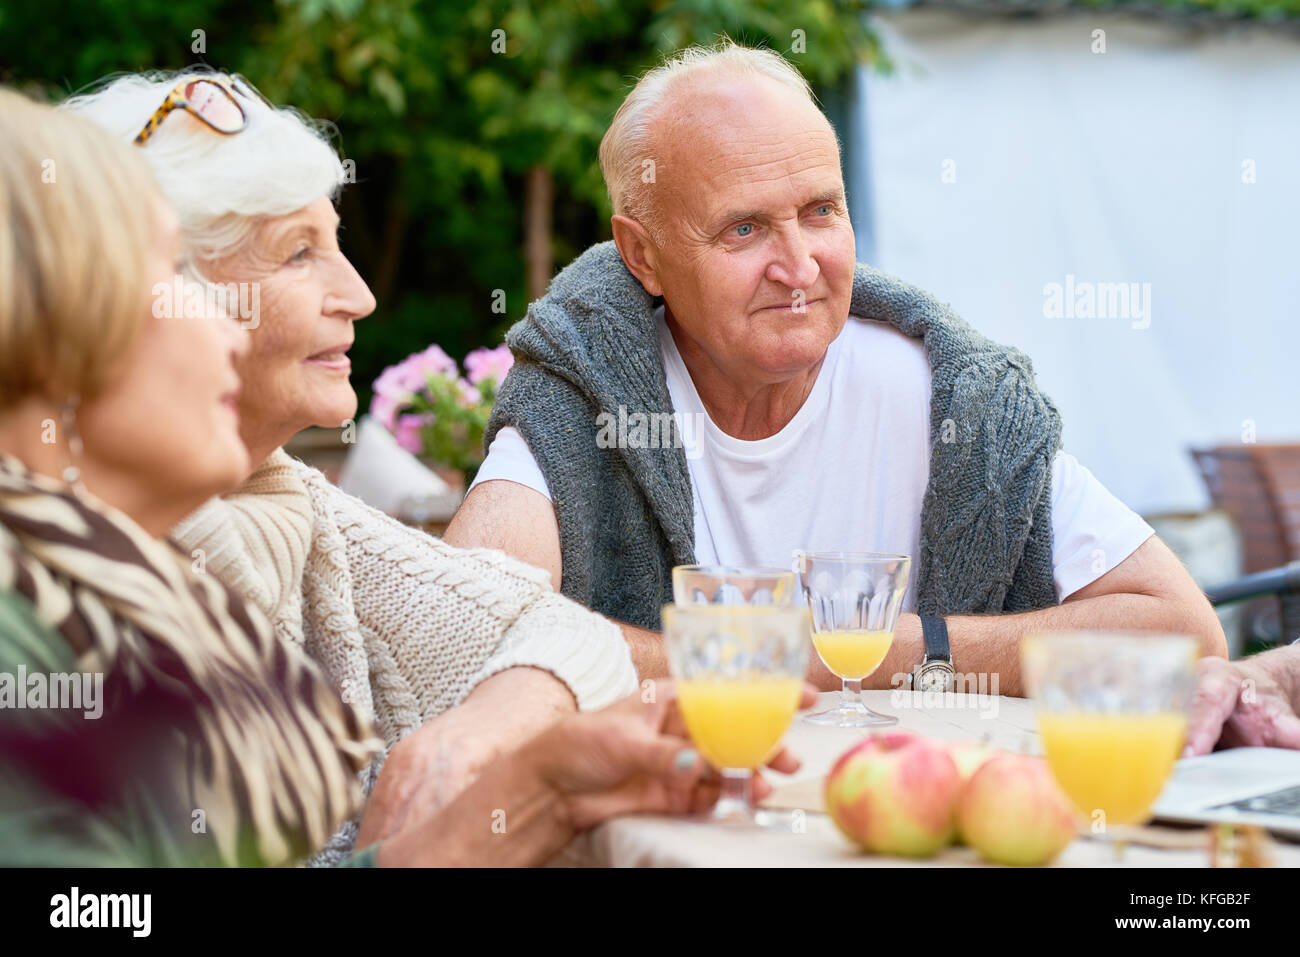 Celebrating Momentous Event with Friends - Stock Image